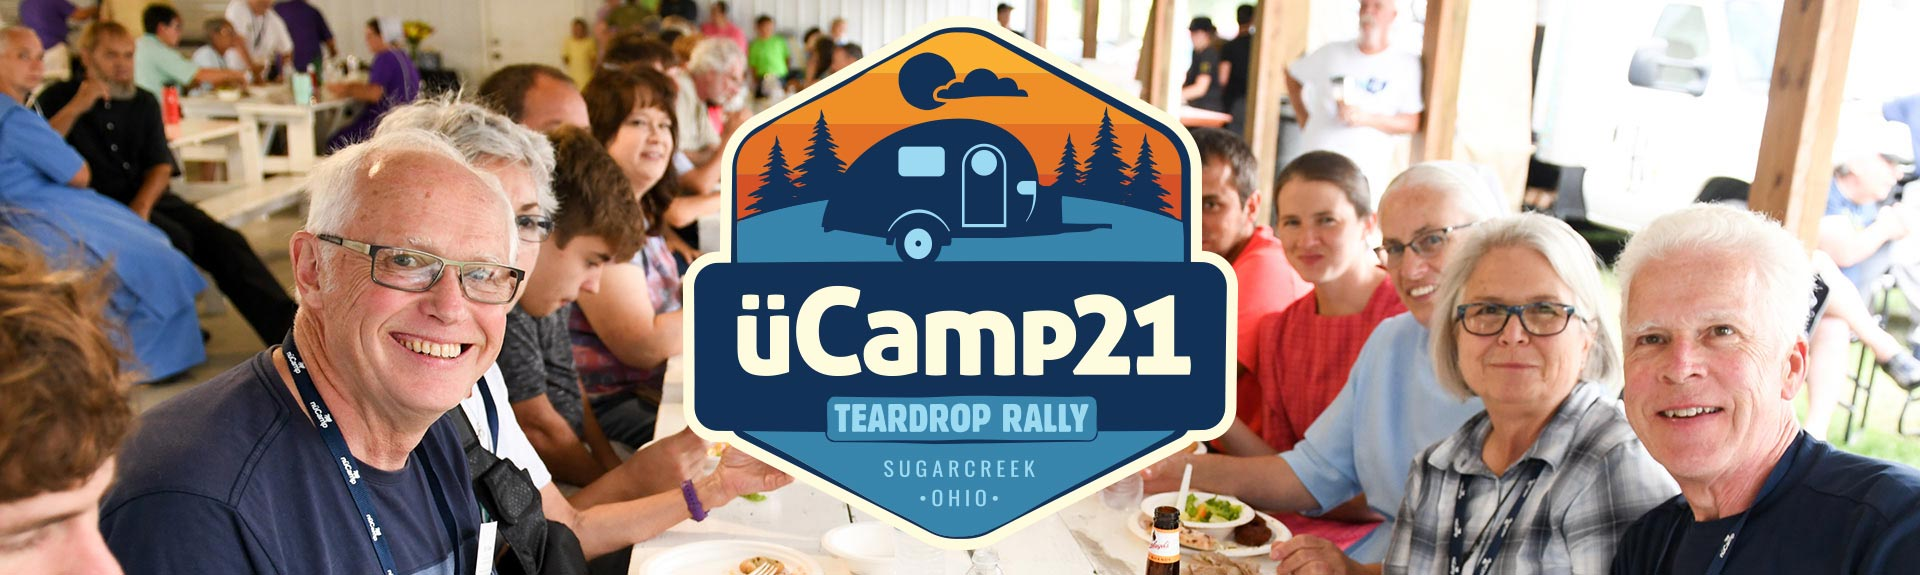 Virtual uCamp